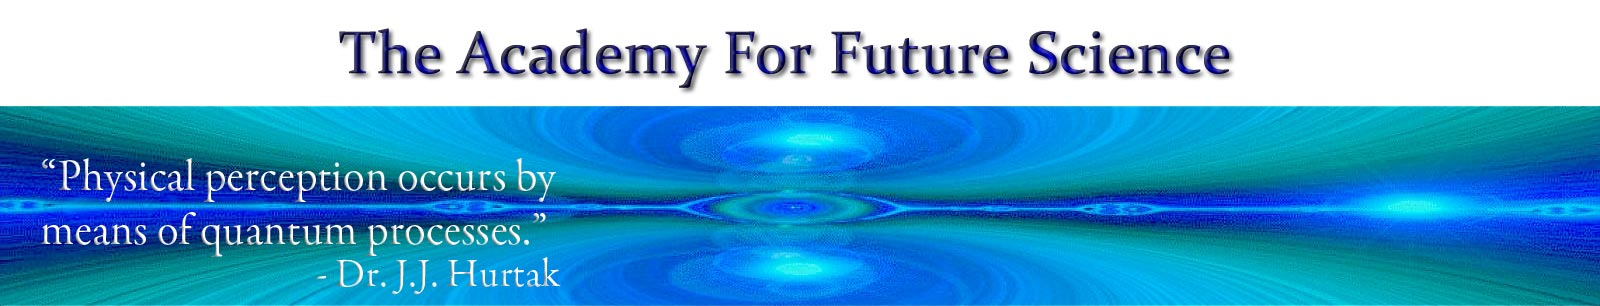 Academy for Future Science Logo